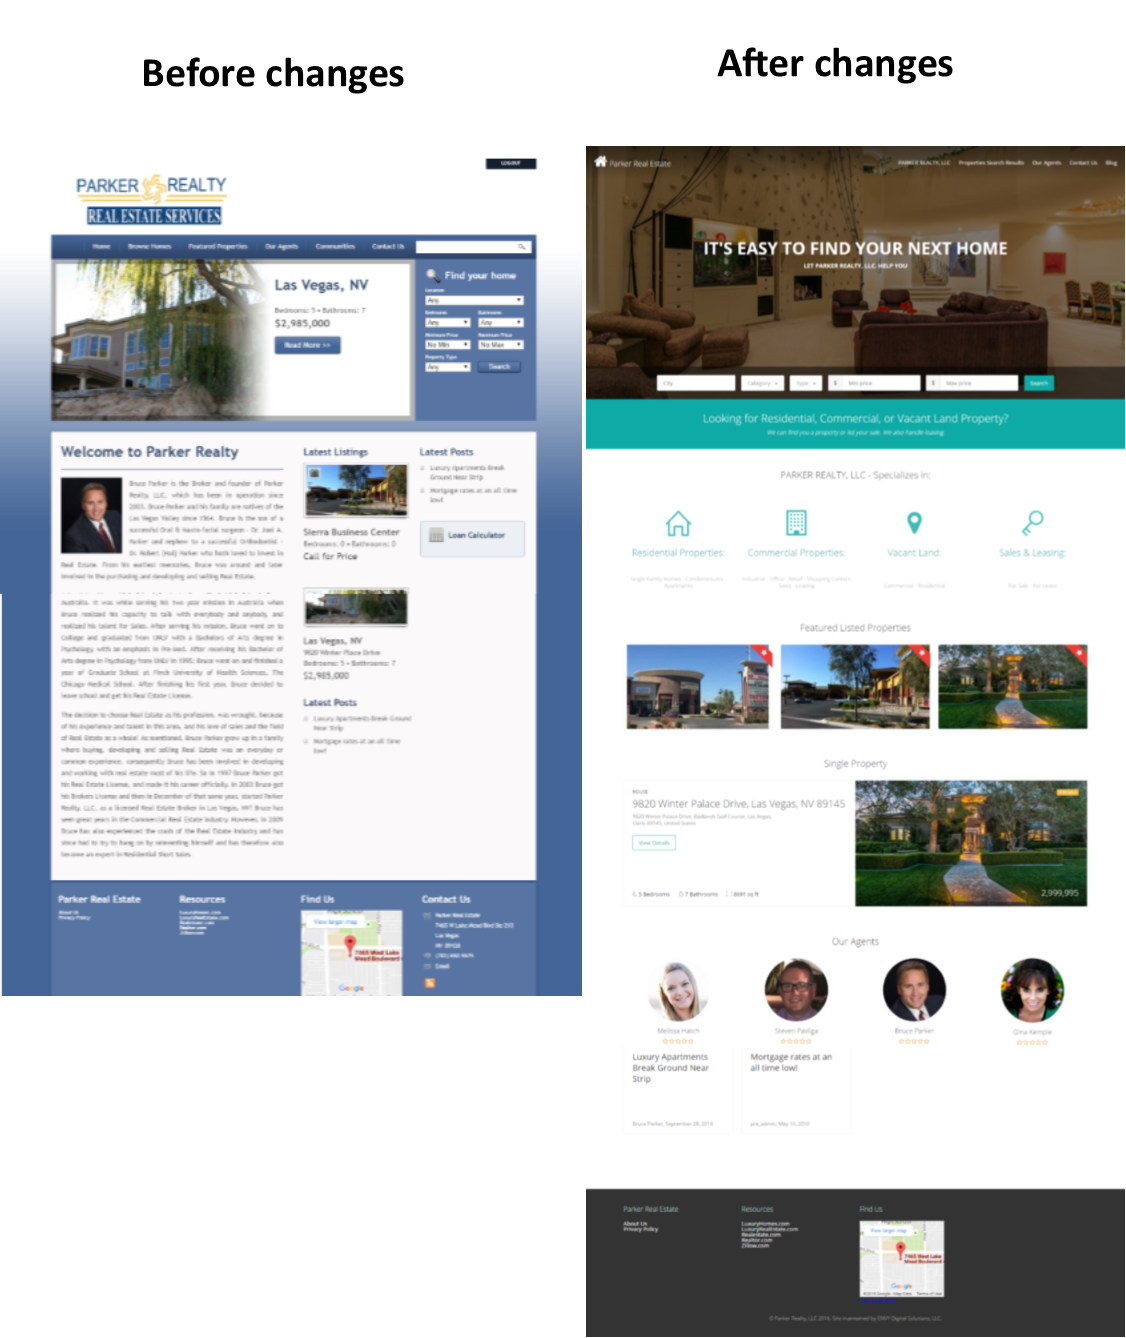 Image of Parker Realty Website Before and After changes.